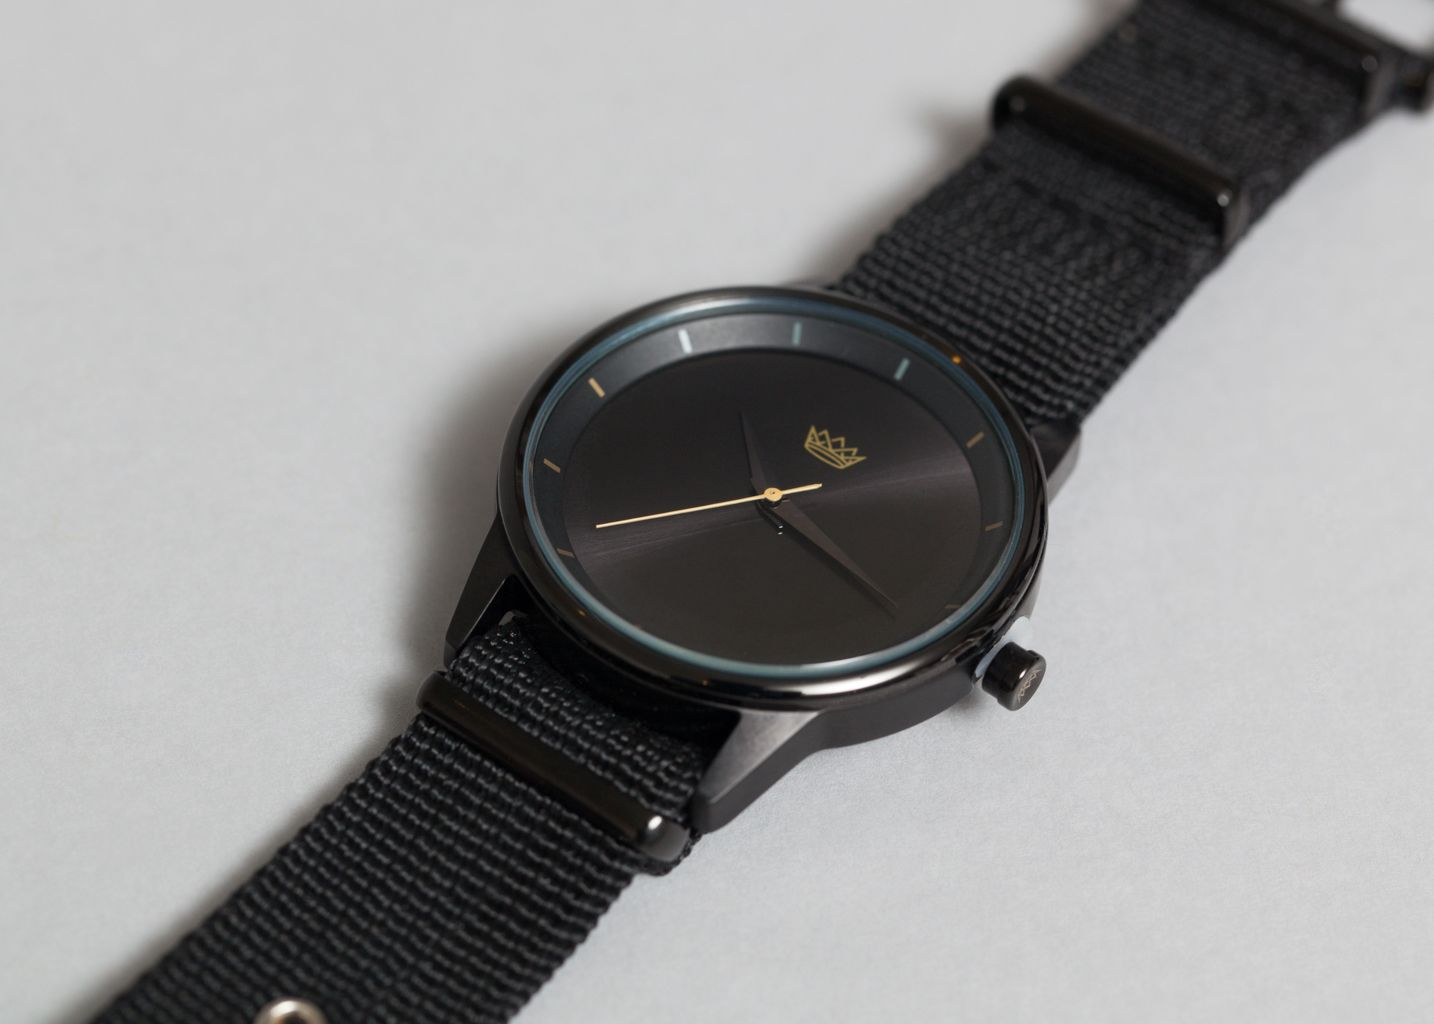 Montre #TakeYourTime - Materialiste